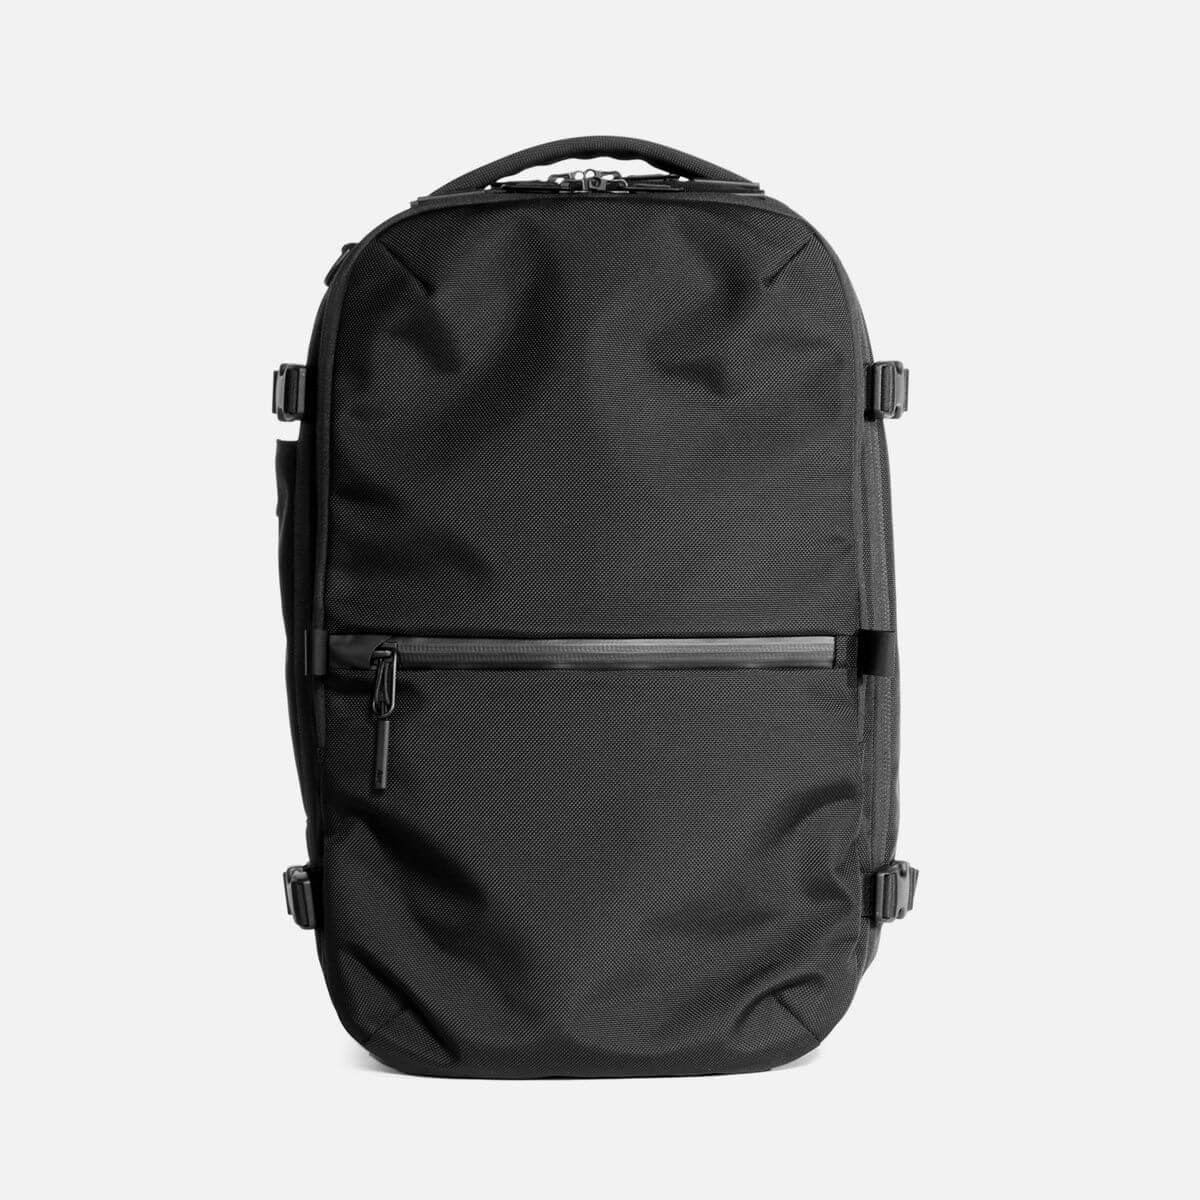 Black nylon travel backpack by Aer.